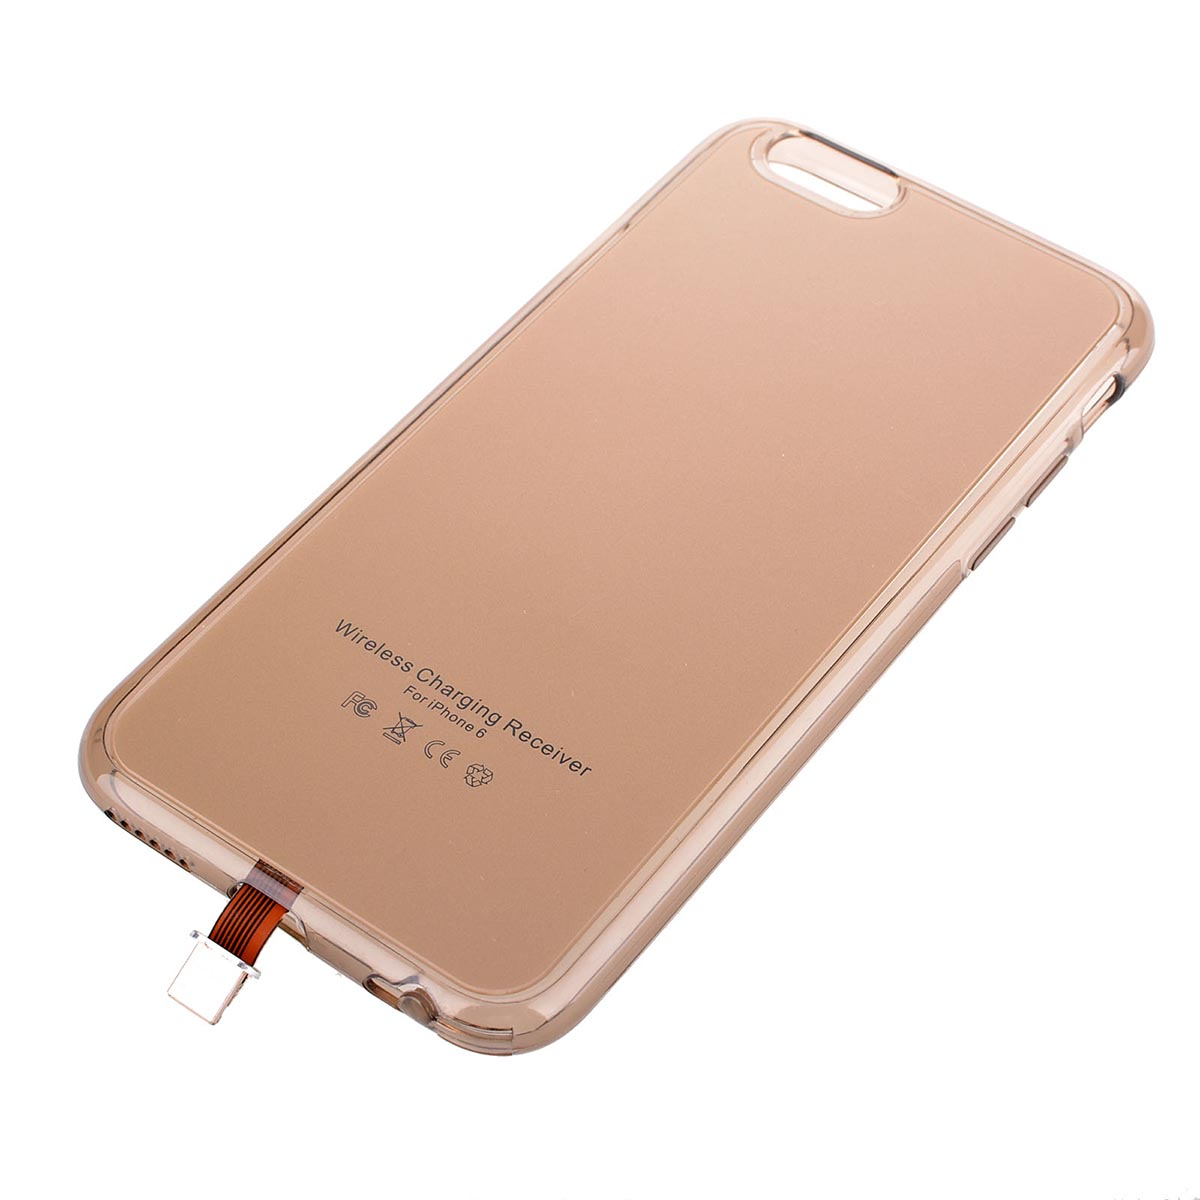 Iphone 6 And Iphone 6s Wireless Charging: IPhone 6 And IPhone 6s Wireless Charging Case